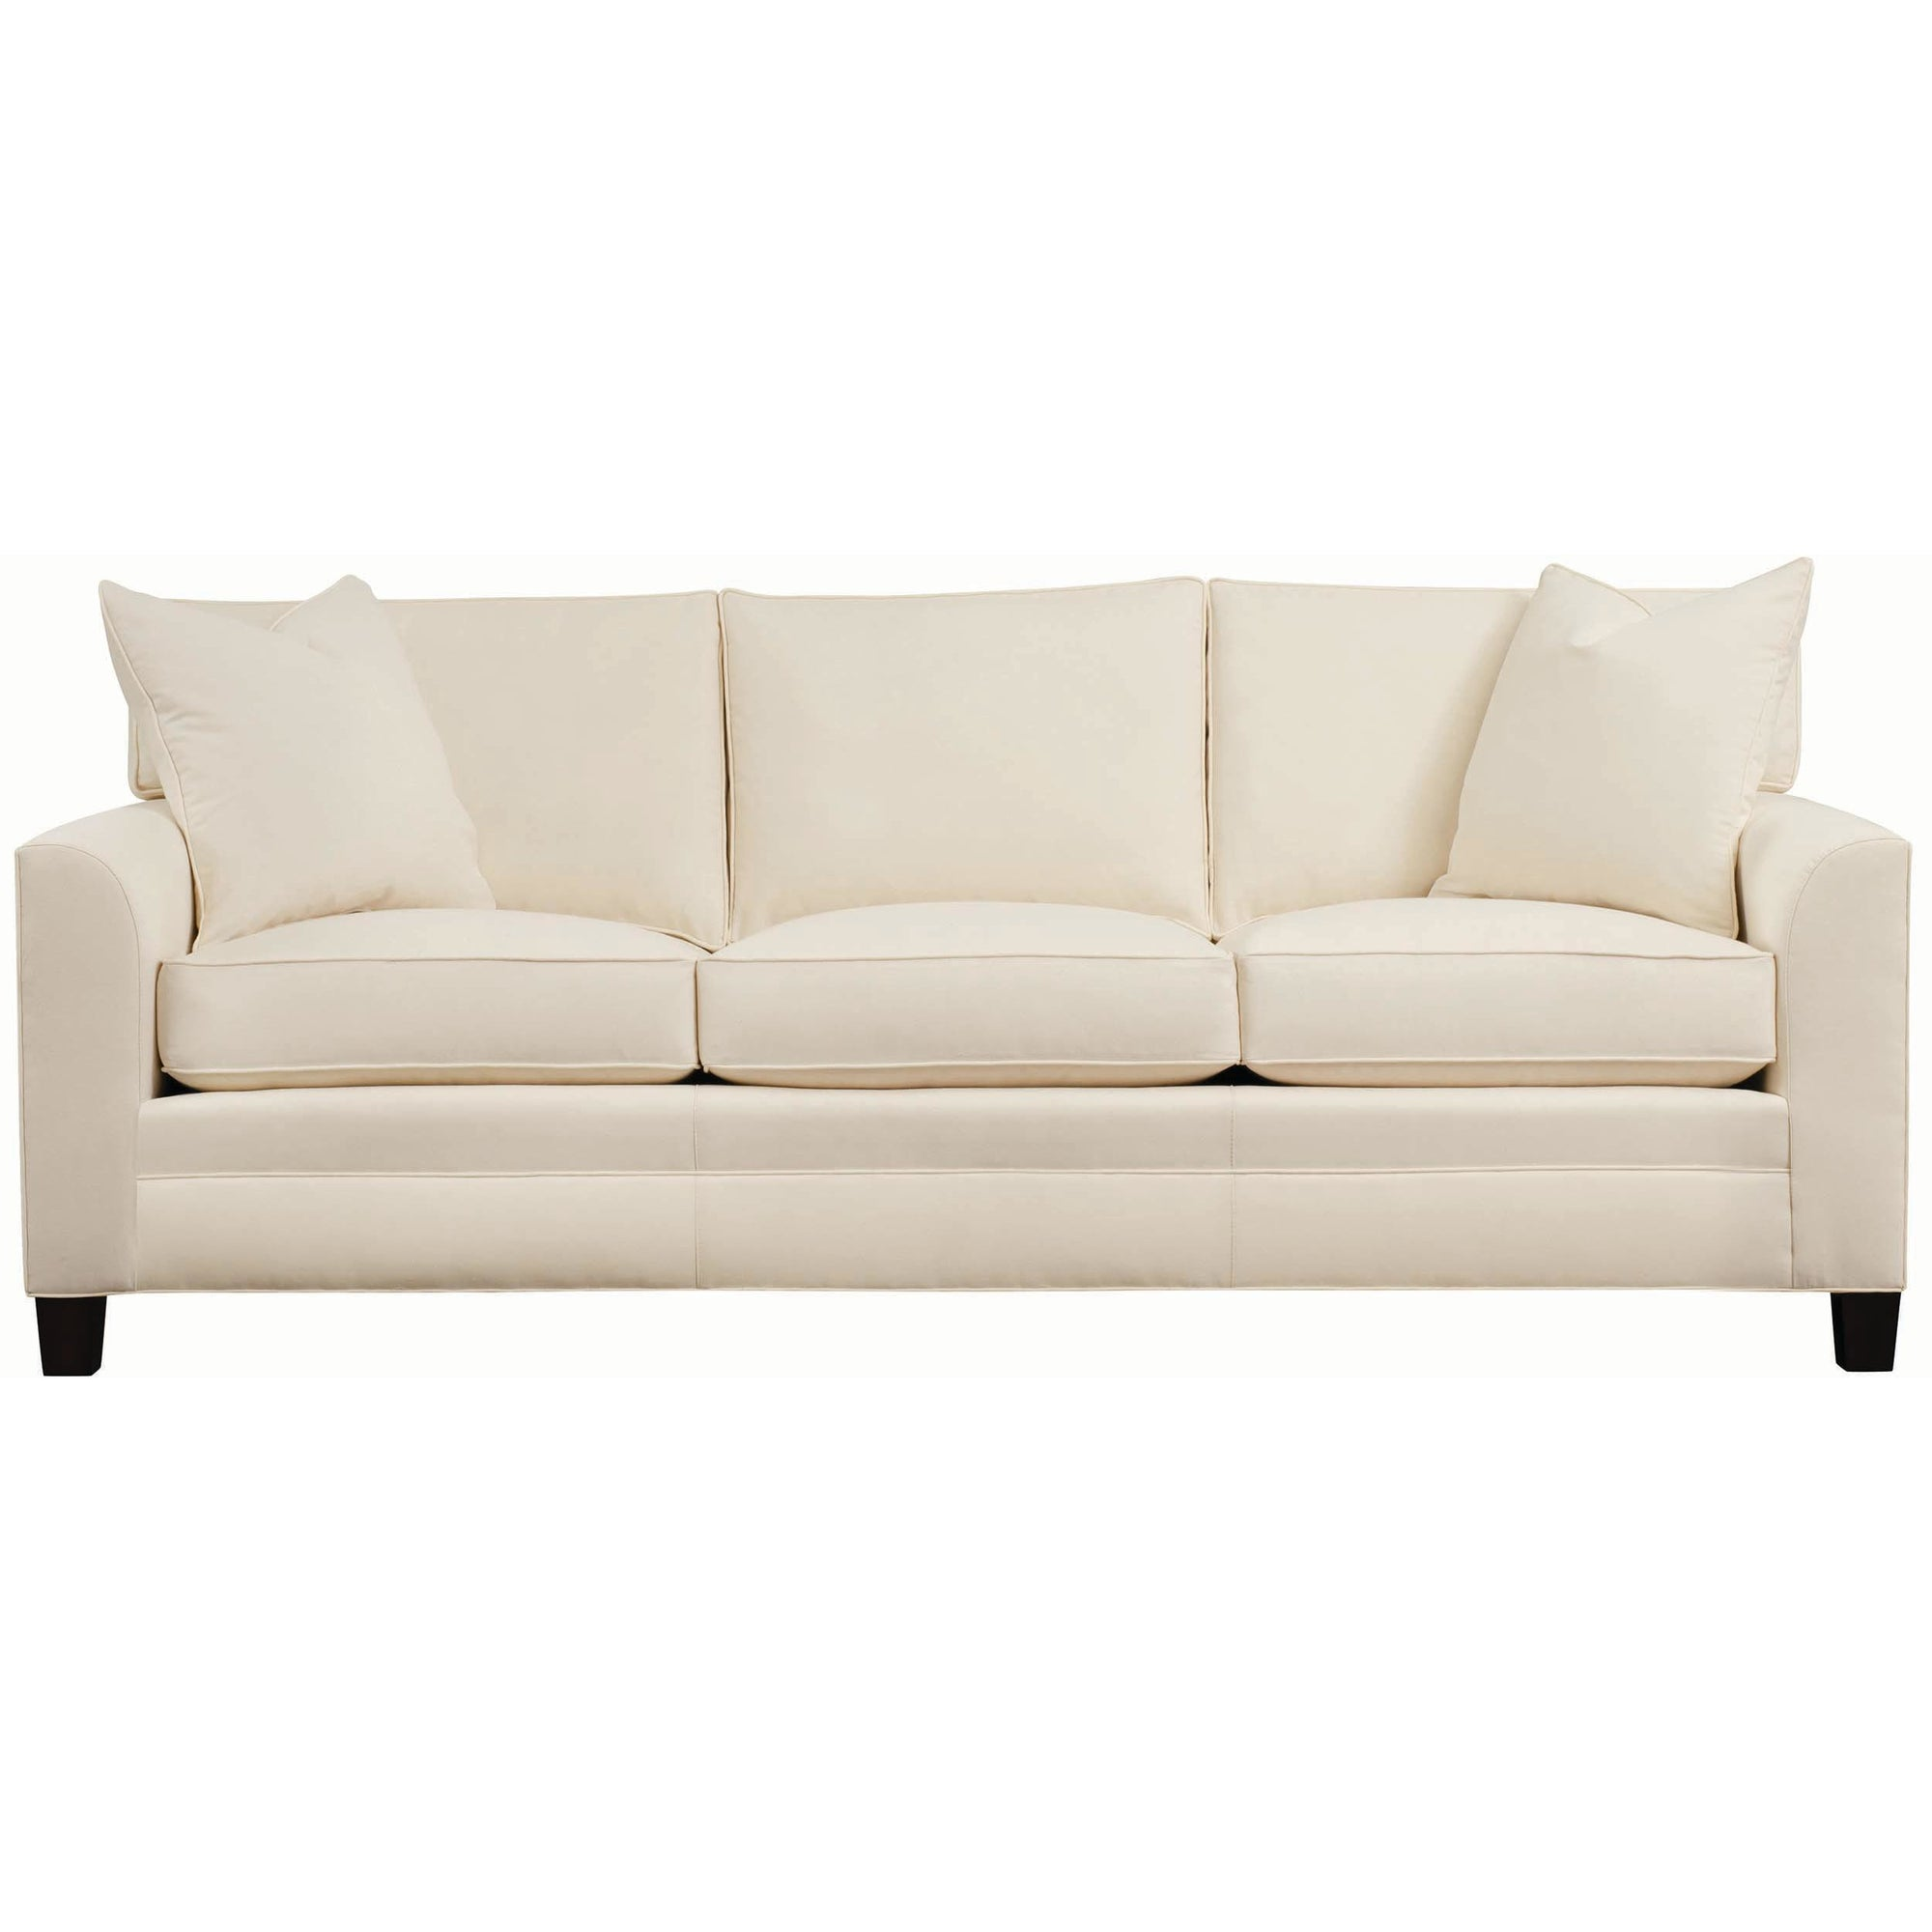 7000 Series Three Cushion Sofa